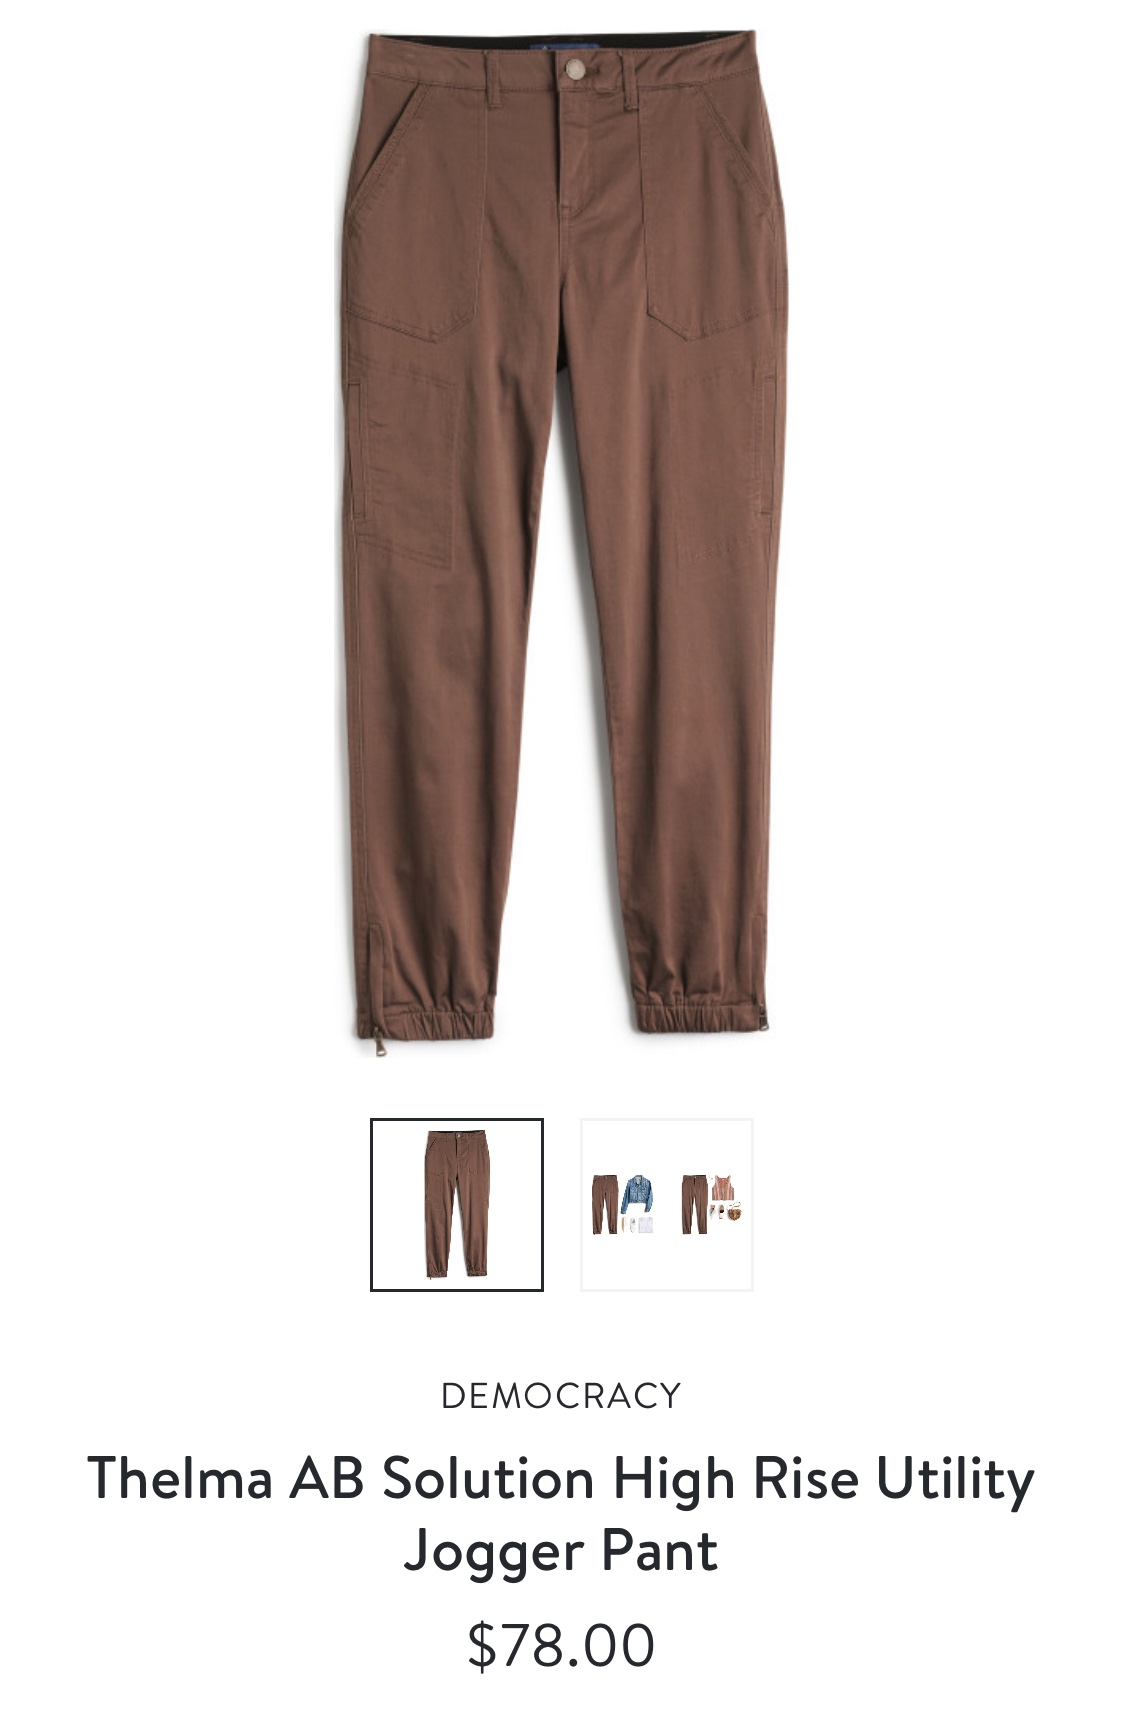 Stitch Fix Democracy Thelma AB Solution High Rise Utility Jogger Pant